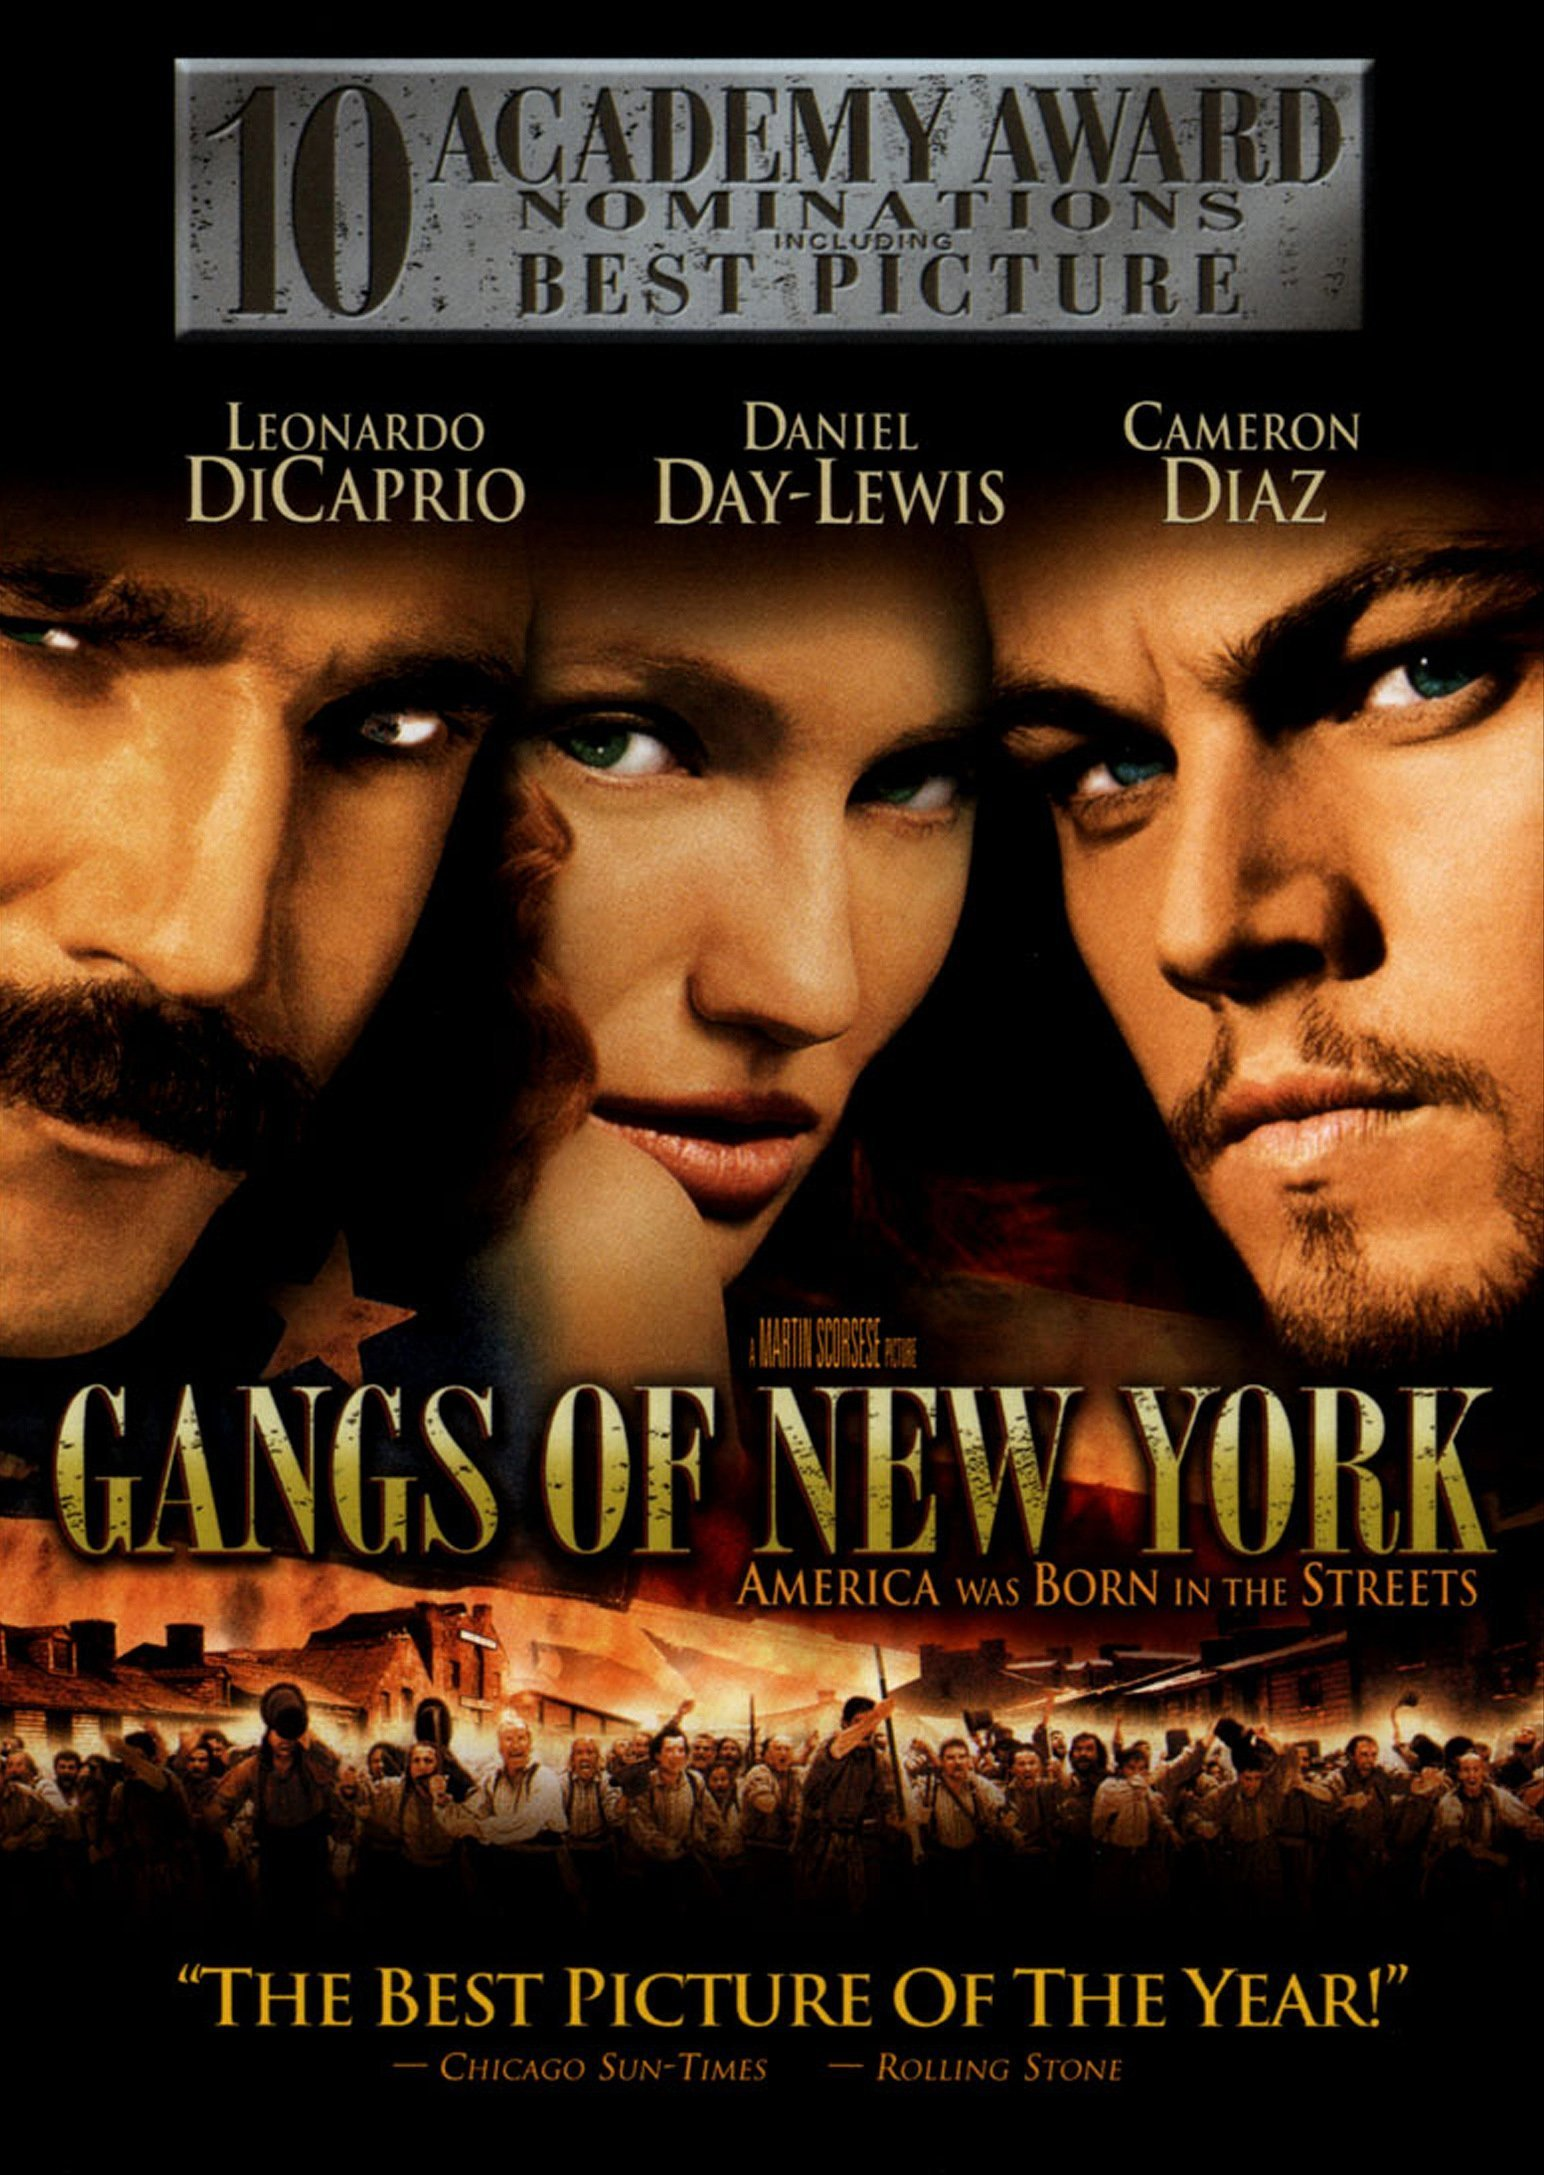 a review of scorseses gangs of new york By megan bianco martin scorsese's gangs of new york was released during a retrospectively impressive oscar season: rob marshall's chicago, roman polanski's the pianist, steven spielberg's .